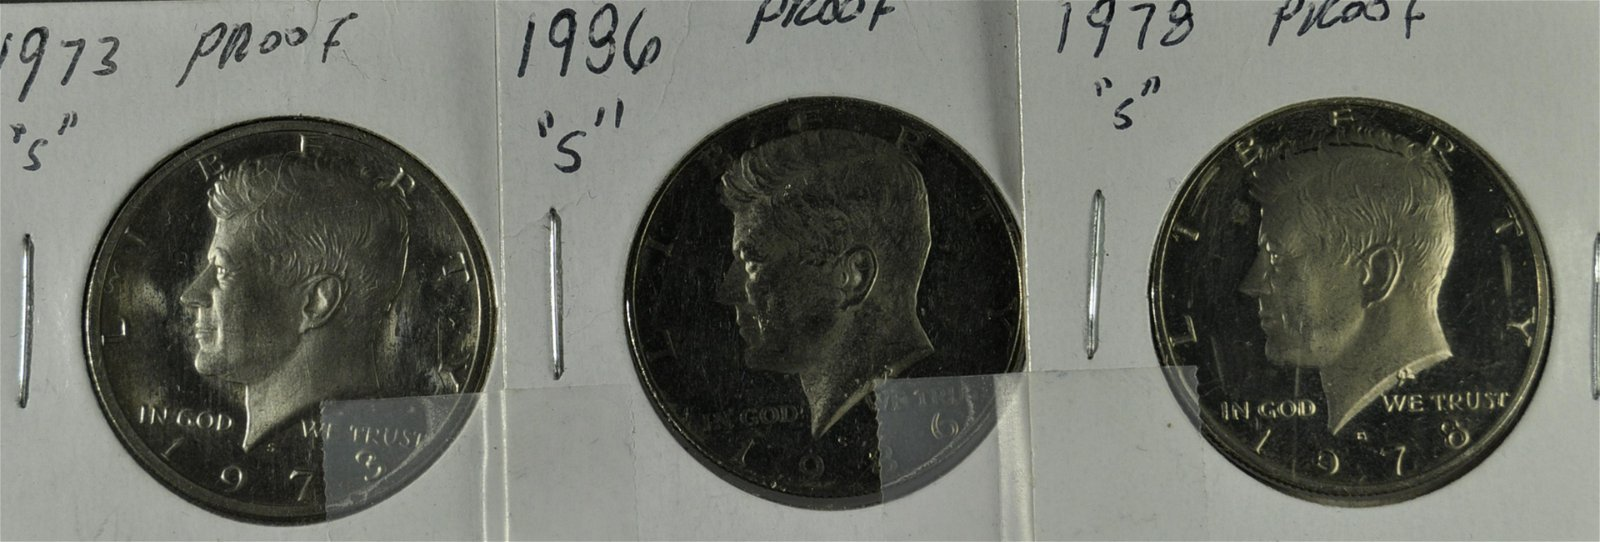 3 Kennedy Proof Half